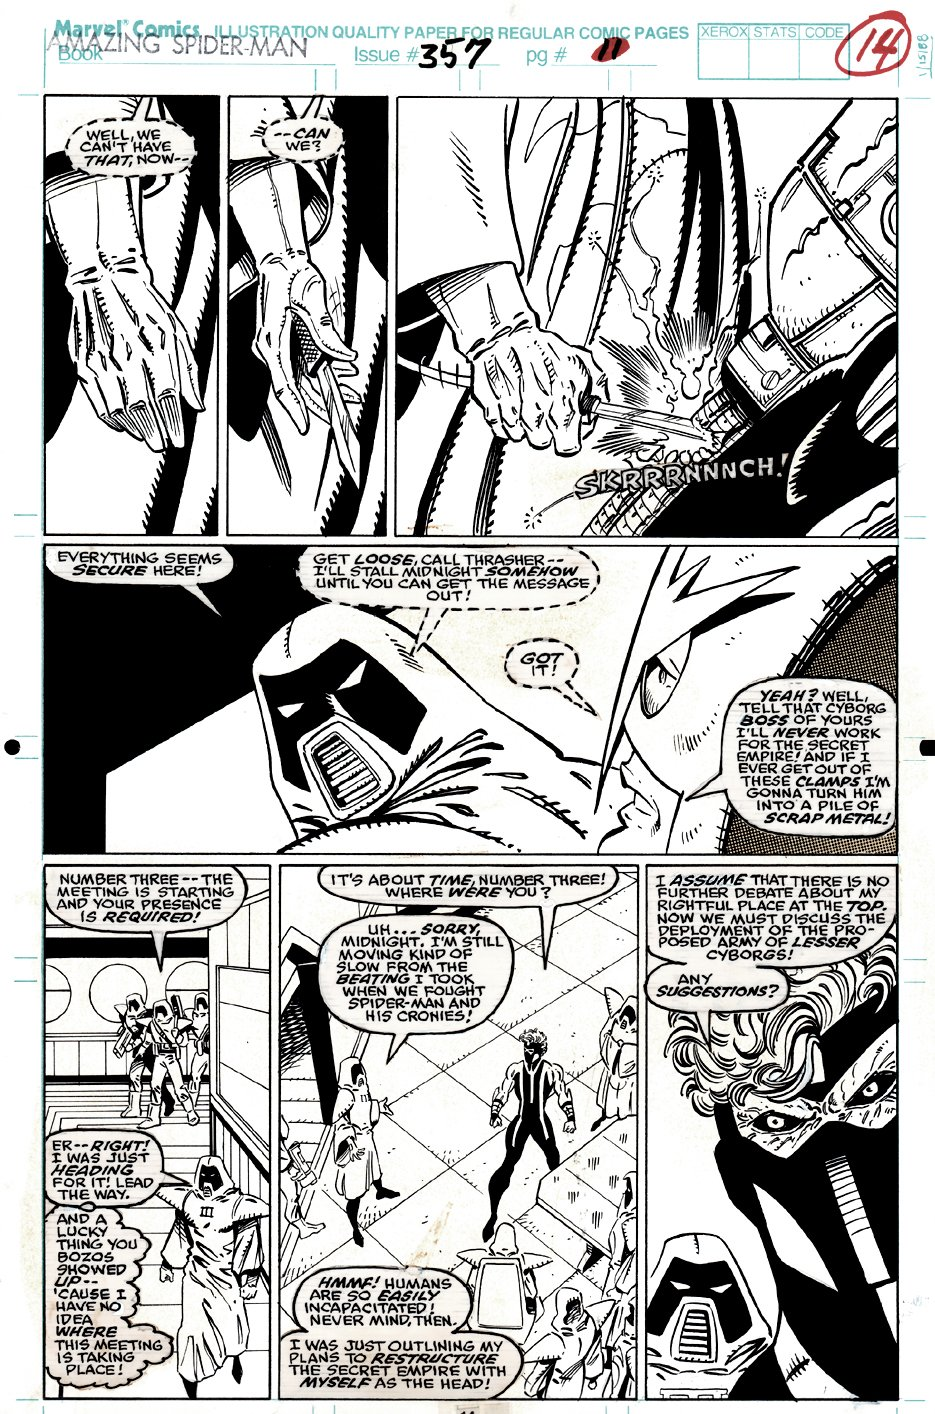 Amazing Spider-Man #357 P 14 (Punisher Getting Ready To Stab Midnight!) 1991